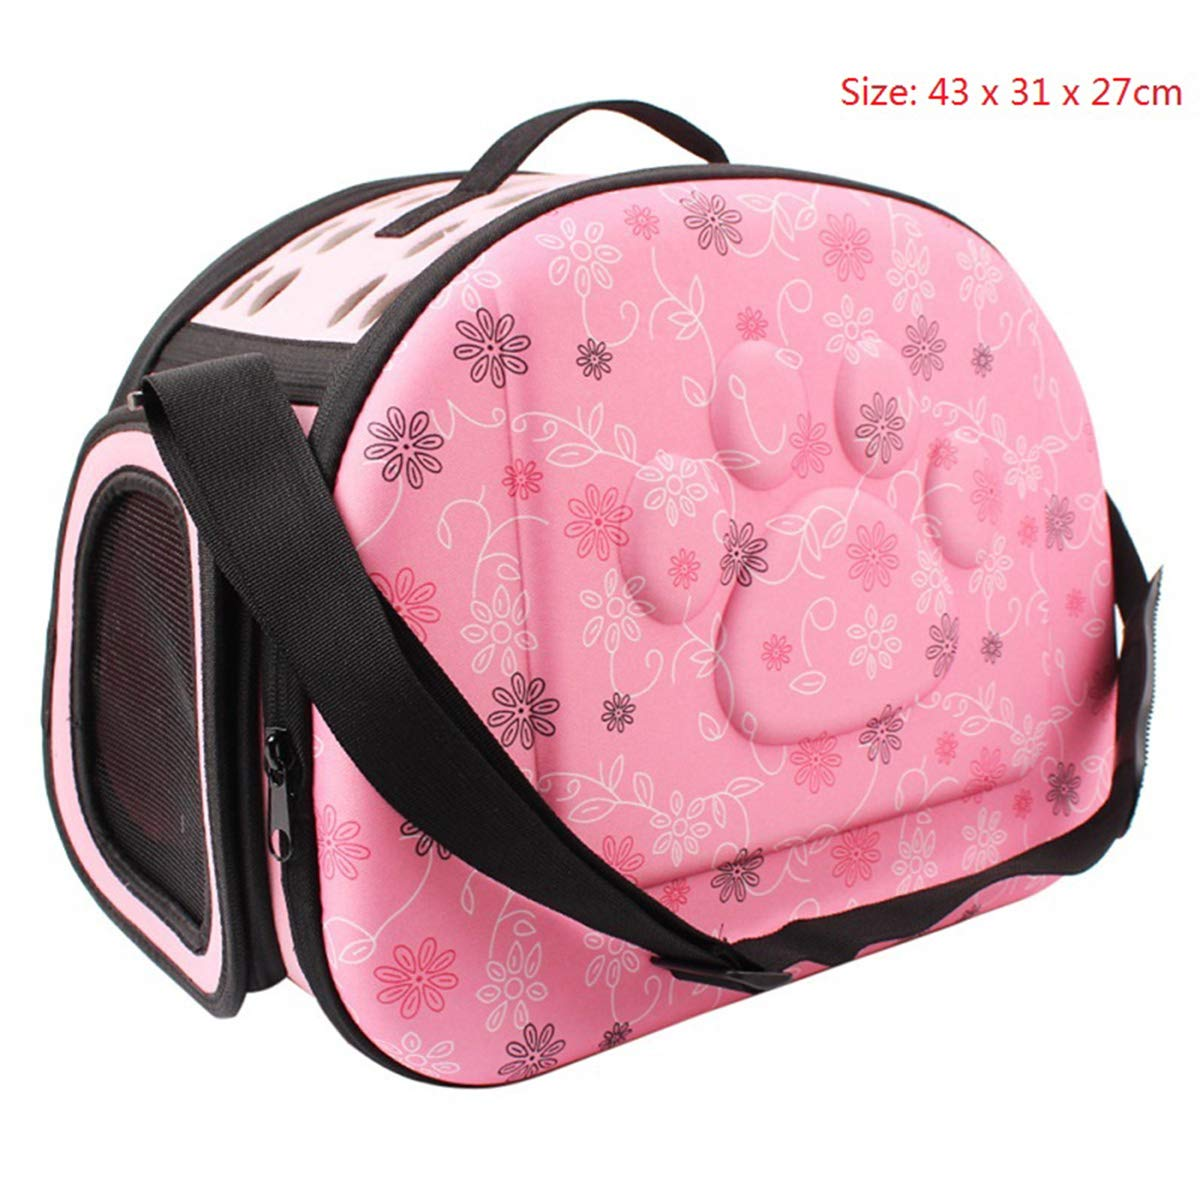 2 as picturePETFDH Travel Pet Dog Carrier Puppy Cat Carrying Outdoor Bags for Small Dogs Shoulder Bag Soft Pets Dog Kennel Pet Products 3 colors 06